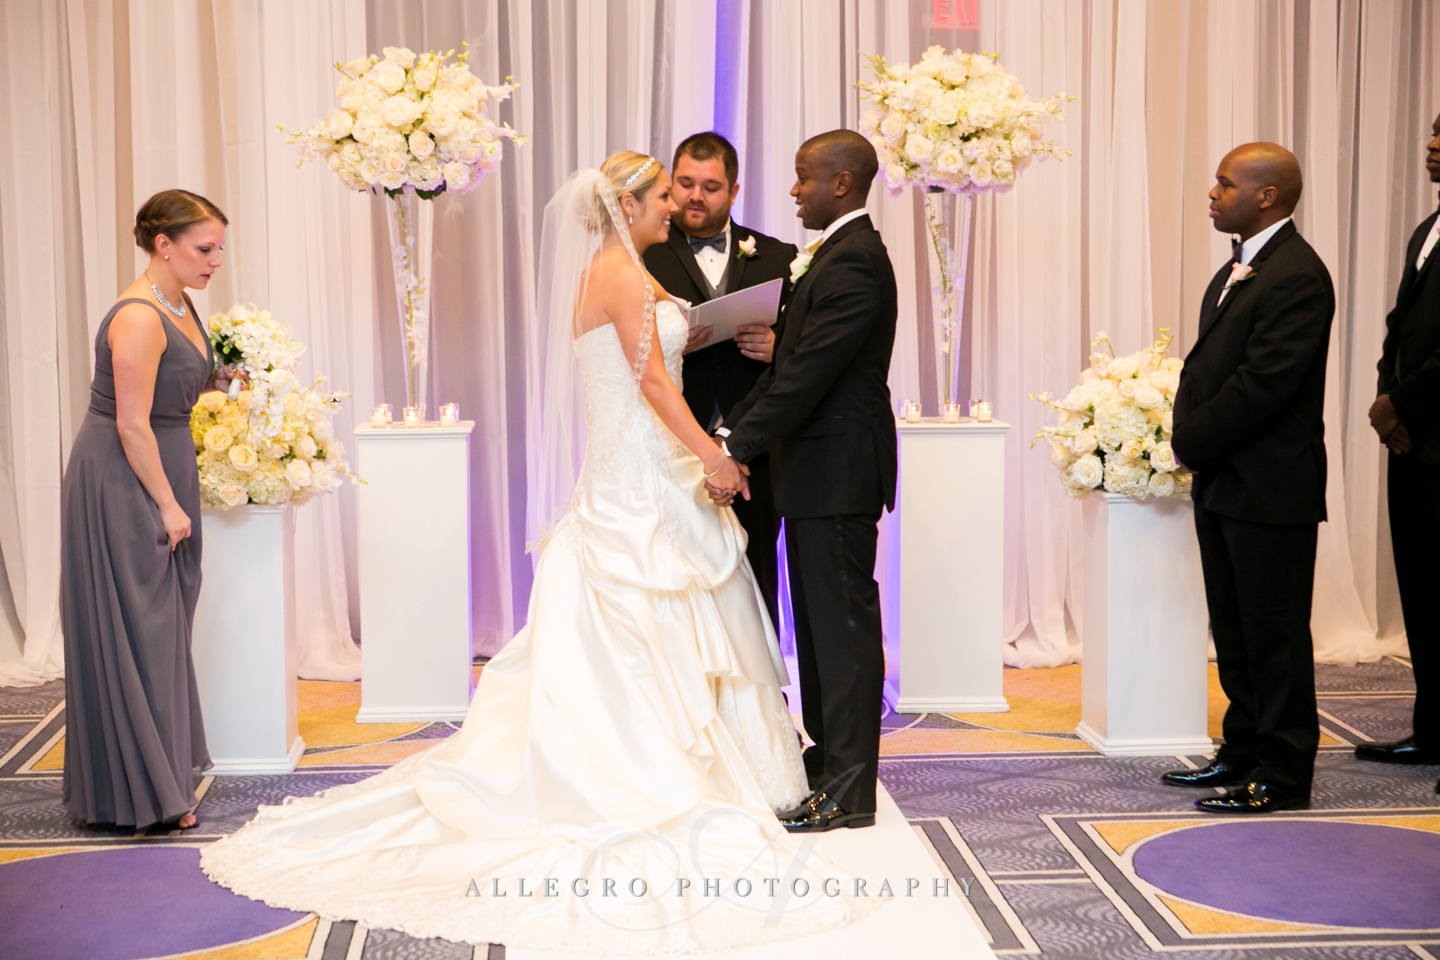 Fairmont Copley Plaza Wedding: Ali + Jared